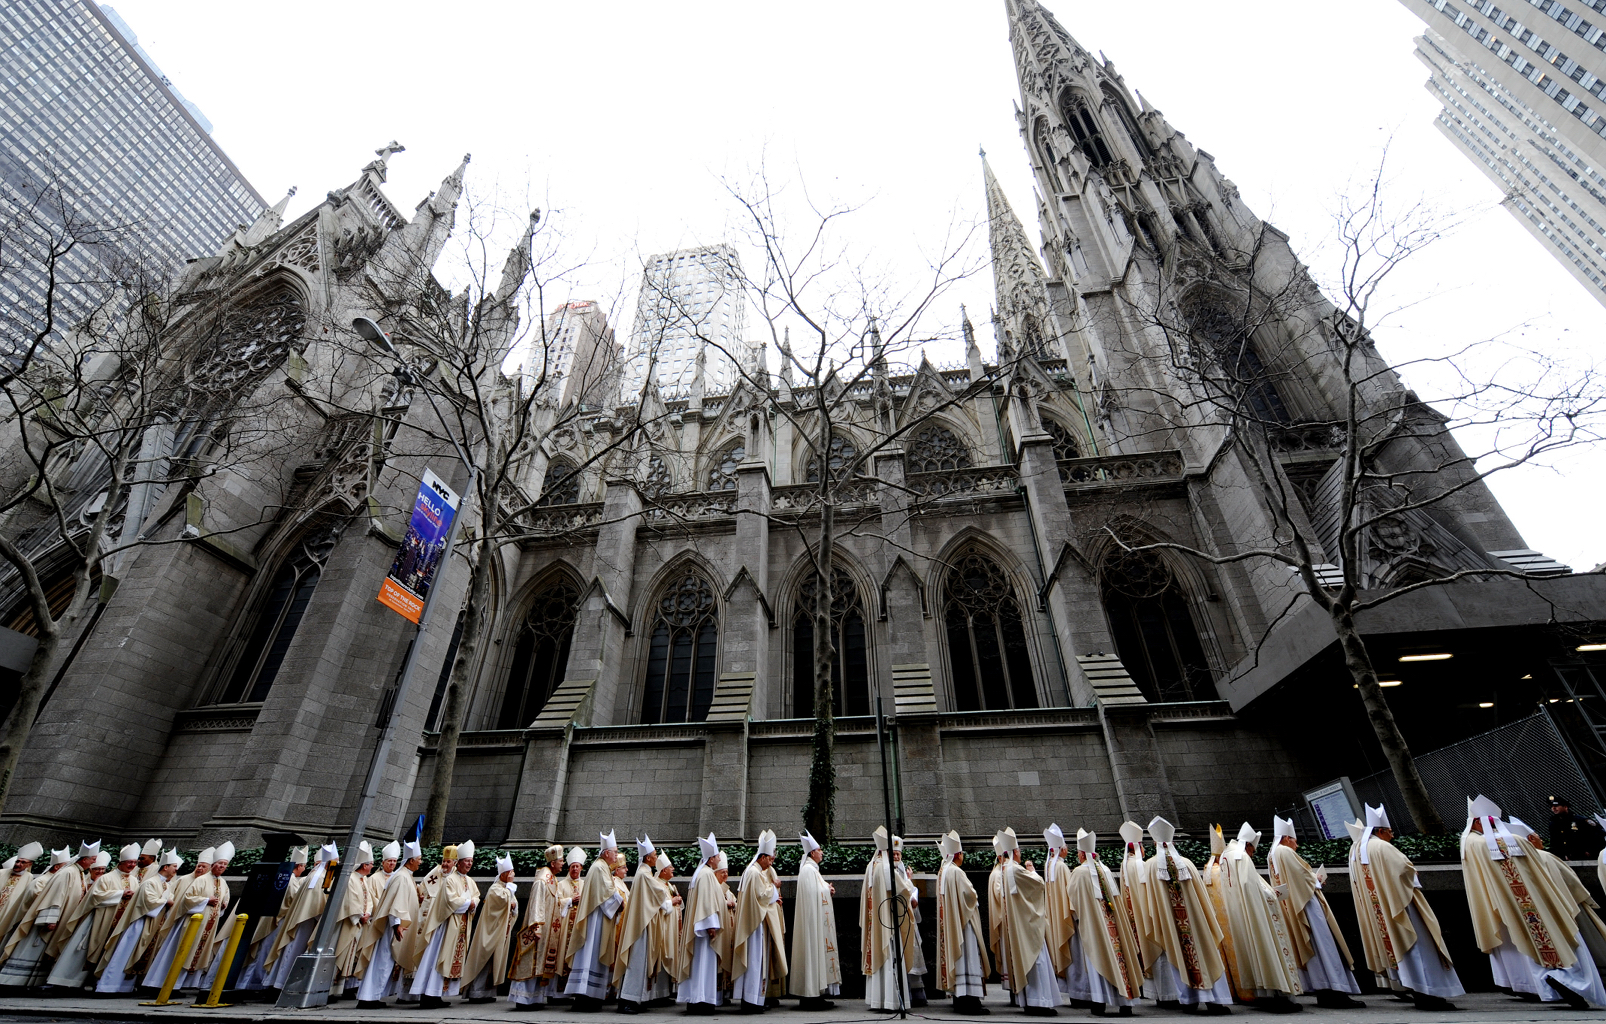 Religious leaders line E 51st St in the procession to the church where Archbishop Timothy Dolan is to perform his first service during his Mass of Installation at St. Patrick's Cathedral in New York City on April 15, 2009. (Credit: Susan Watts / Getty Images)